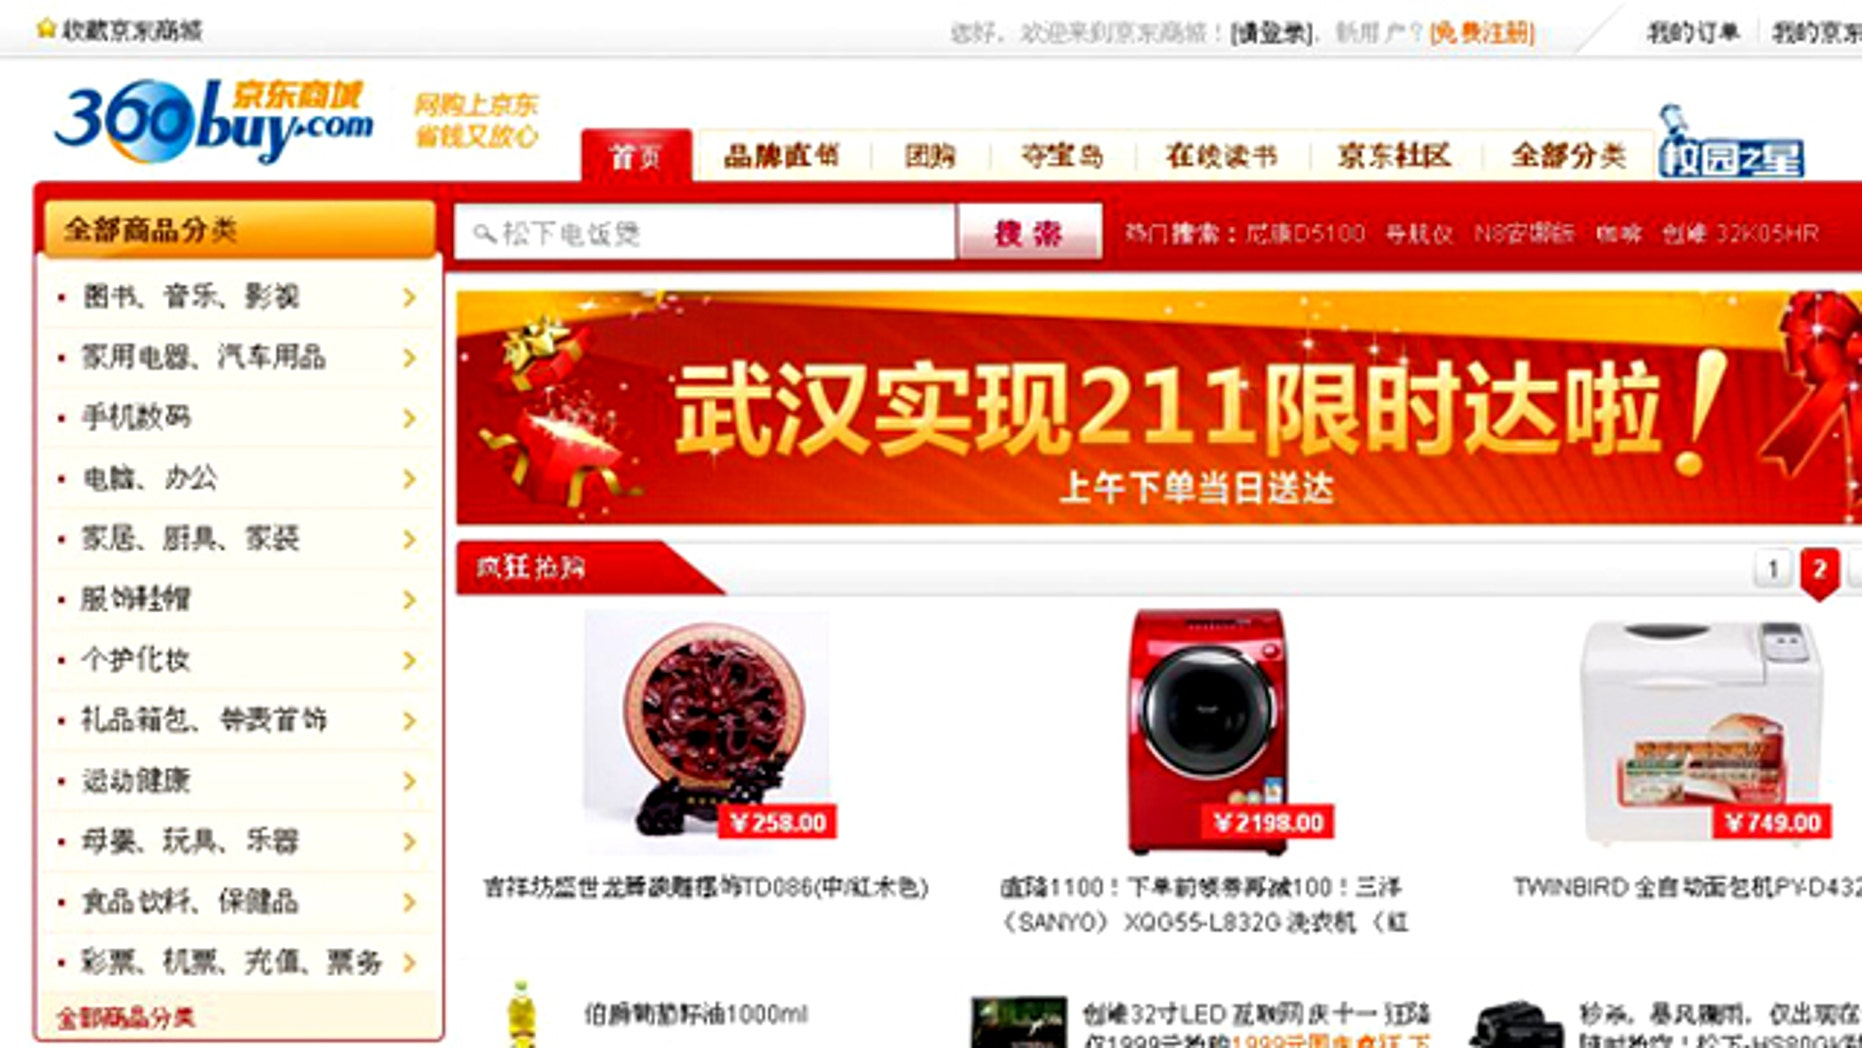 A screenshot of the website for 360buy.com, an online market poised to make the biggest tech IPO in U.S. history.